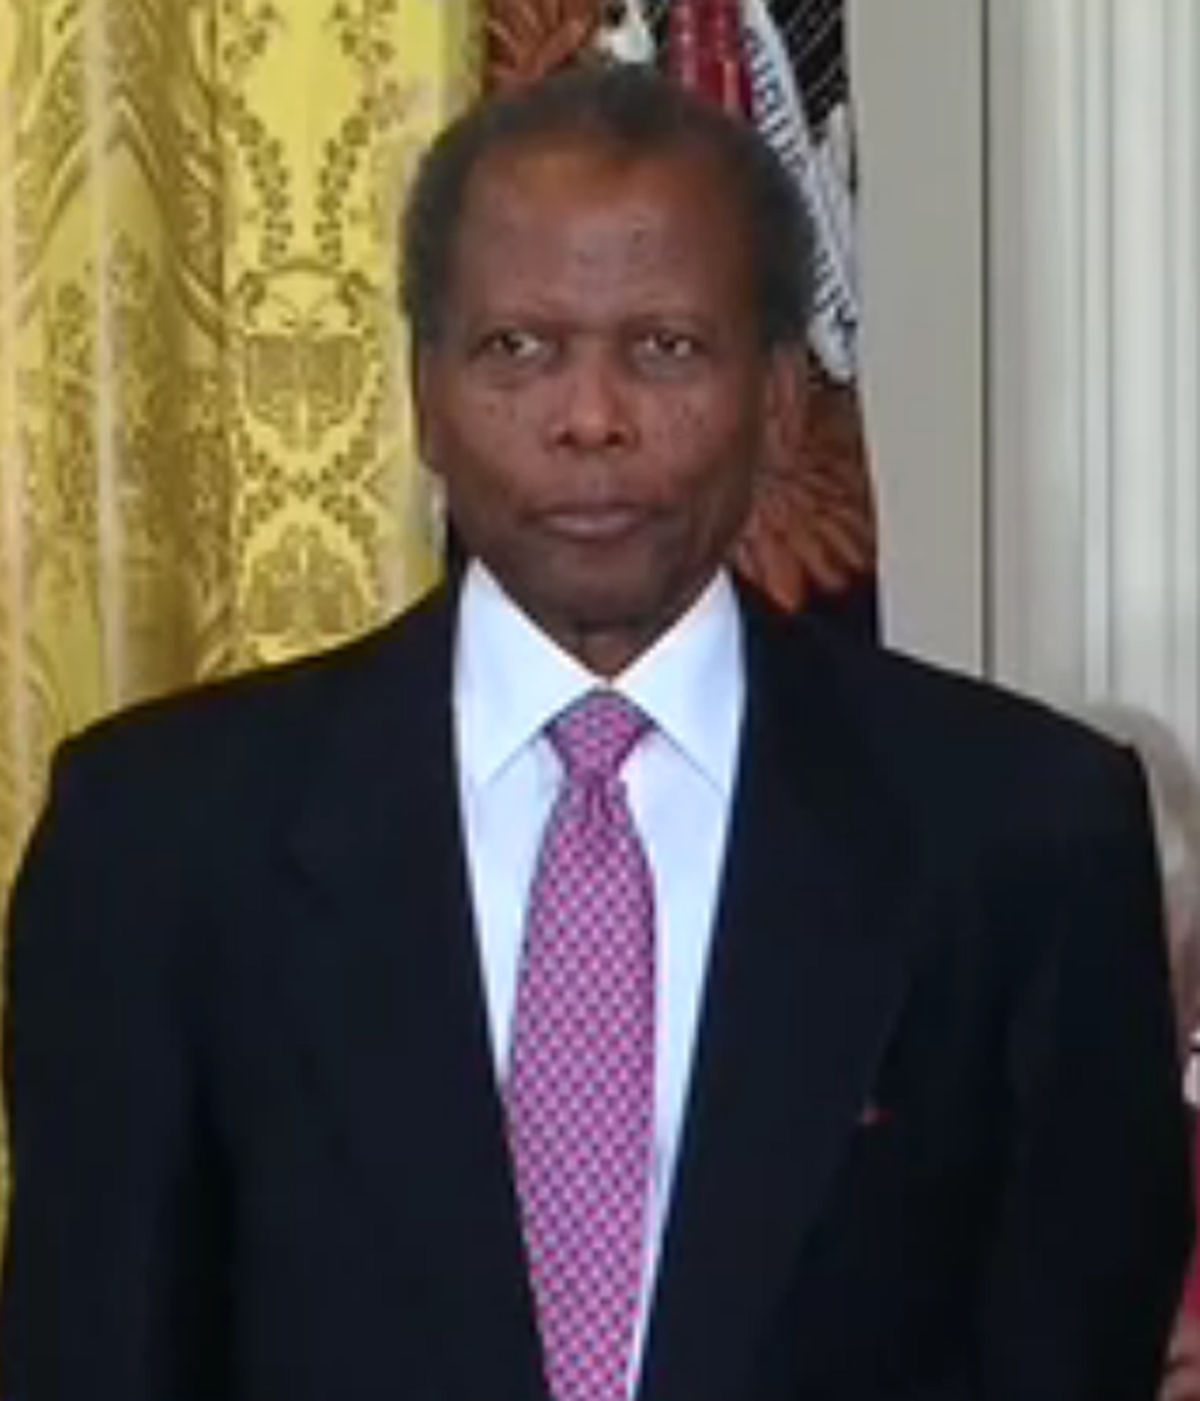 sidney poitier Sir sidney poitier, kbe (born 20 februar 1927) is an american-born bahamian actor, movie director, author, and diplomatpoitier wis the first black actor to win an academy awaird for best actor.